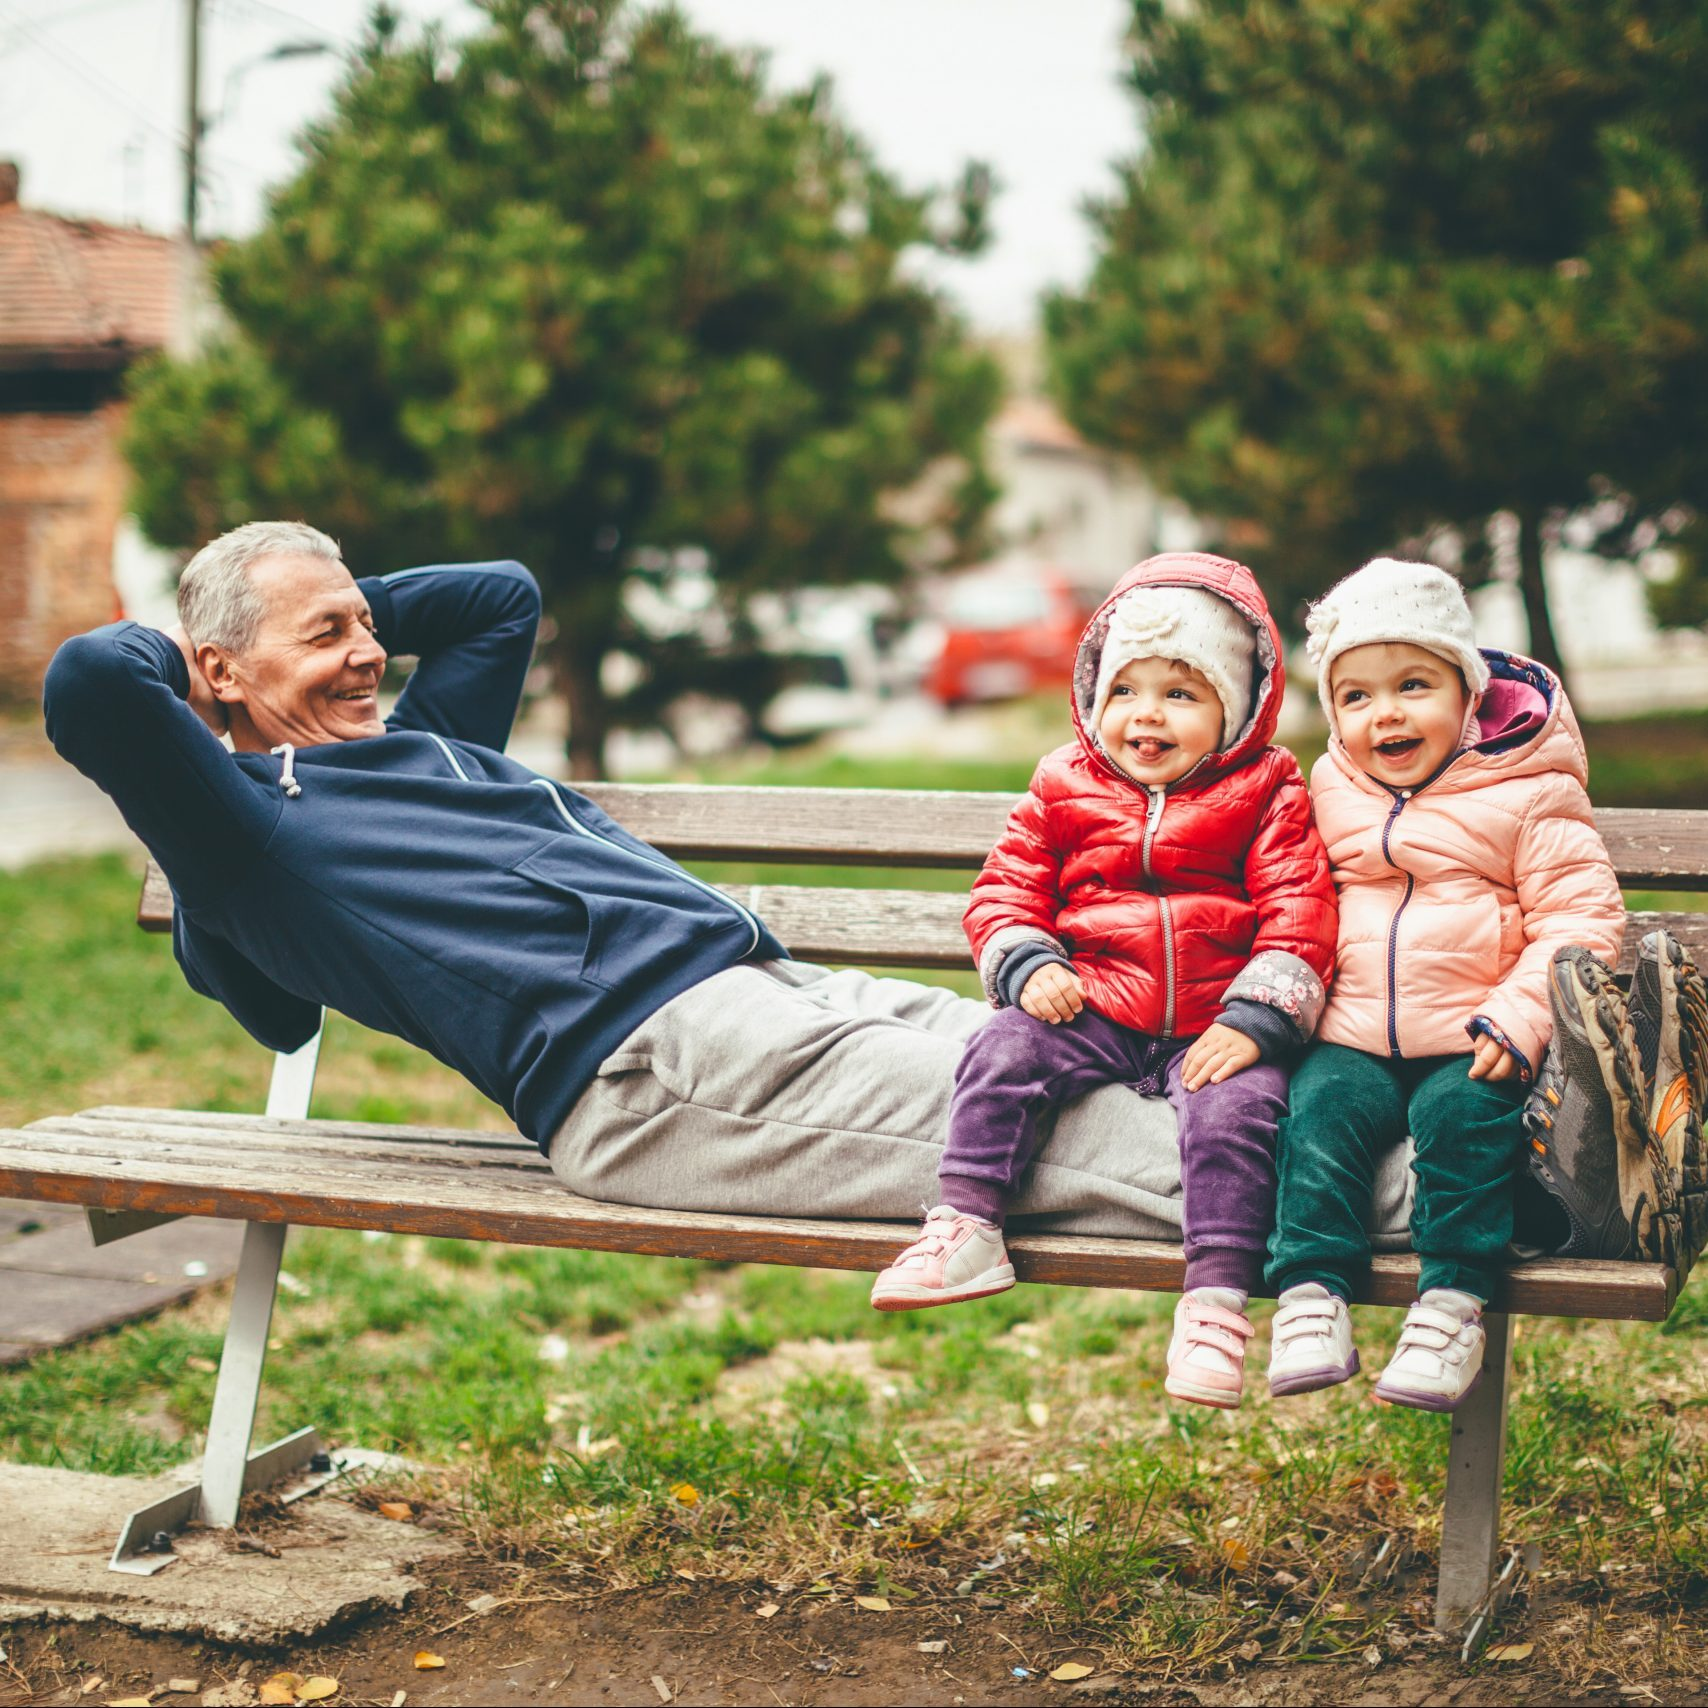 A photo of a playful grandfather and granddaughter. They are casually dressed and playing in the park. They exercise together.